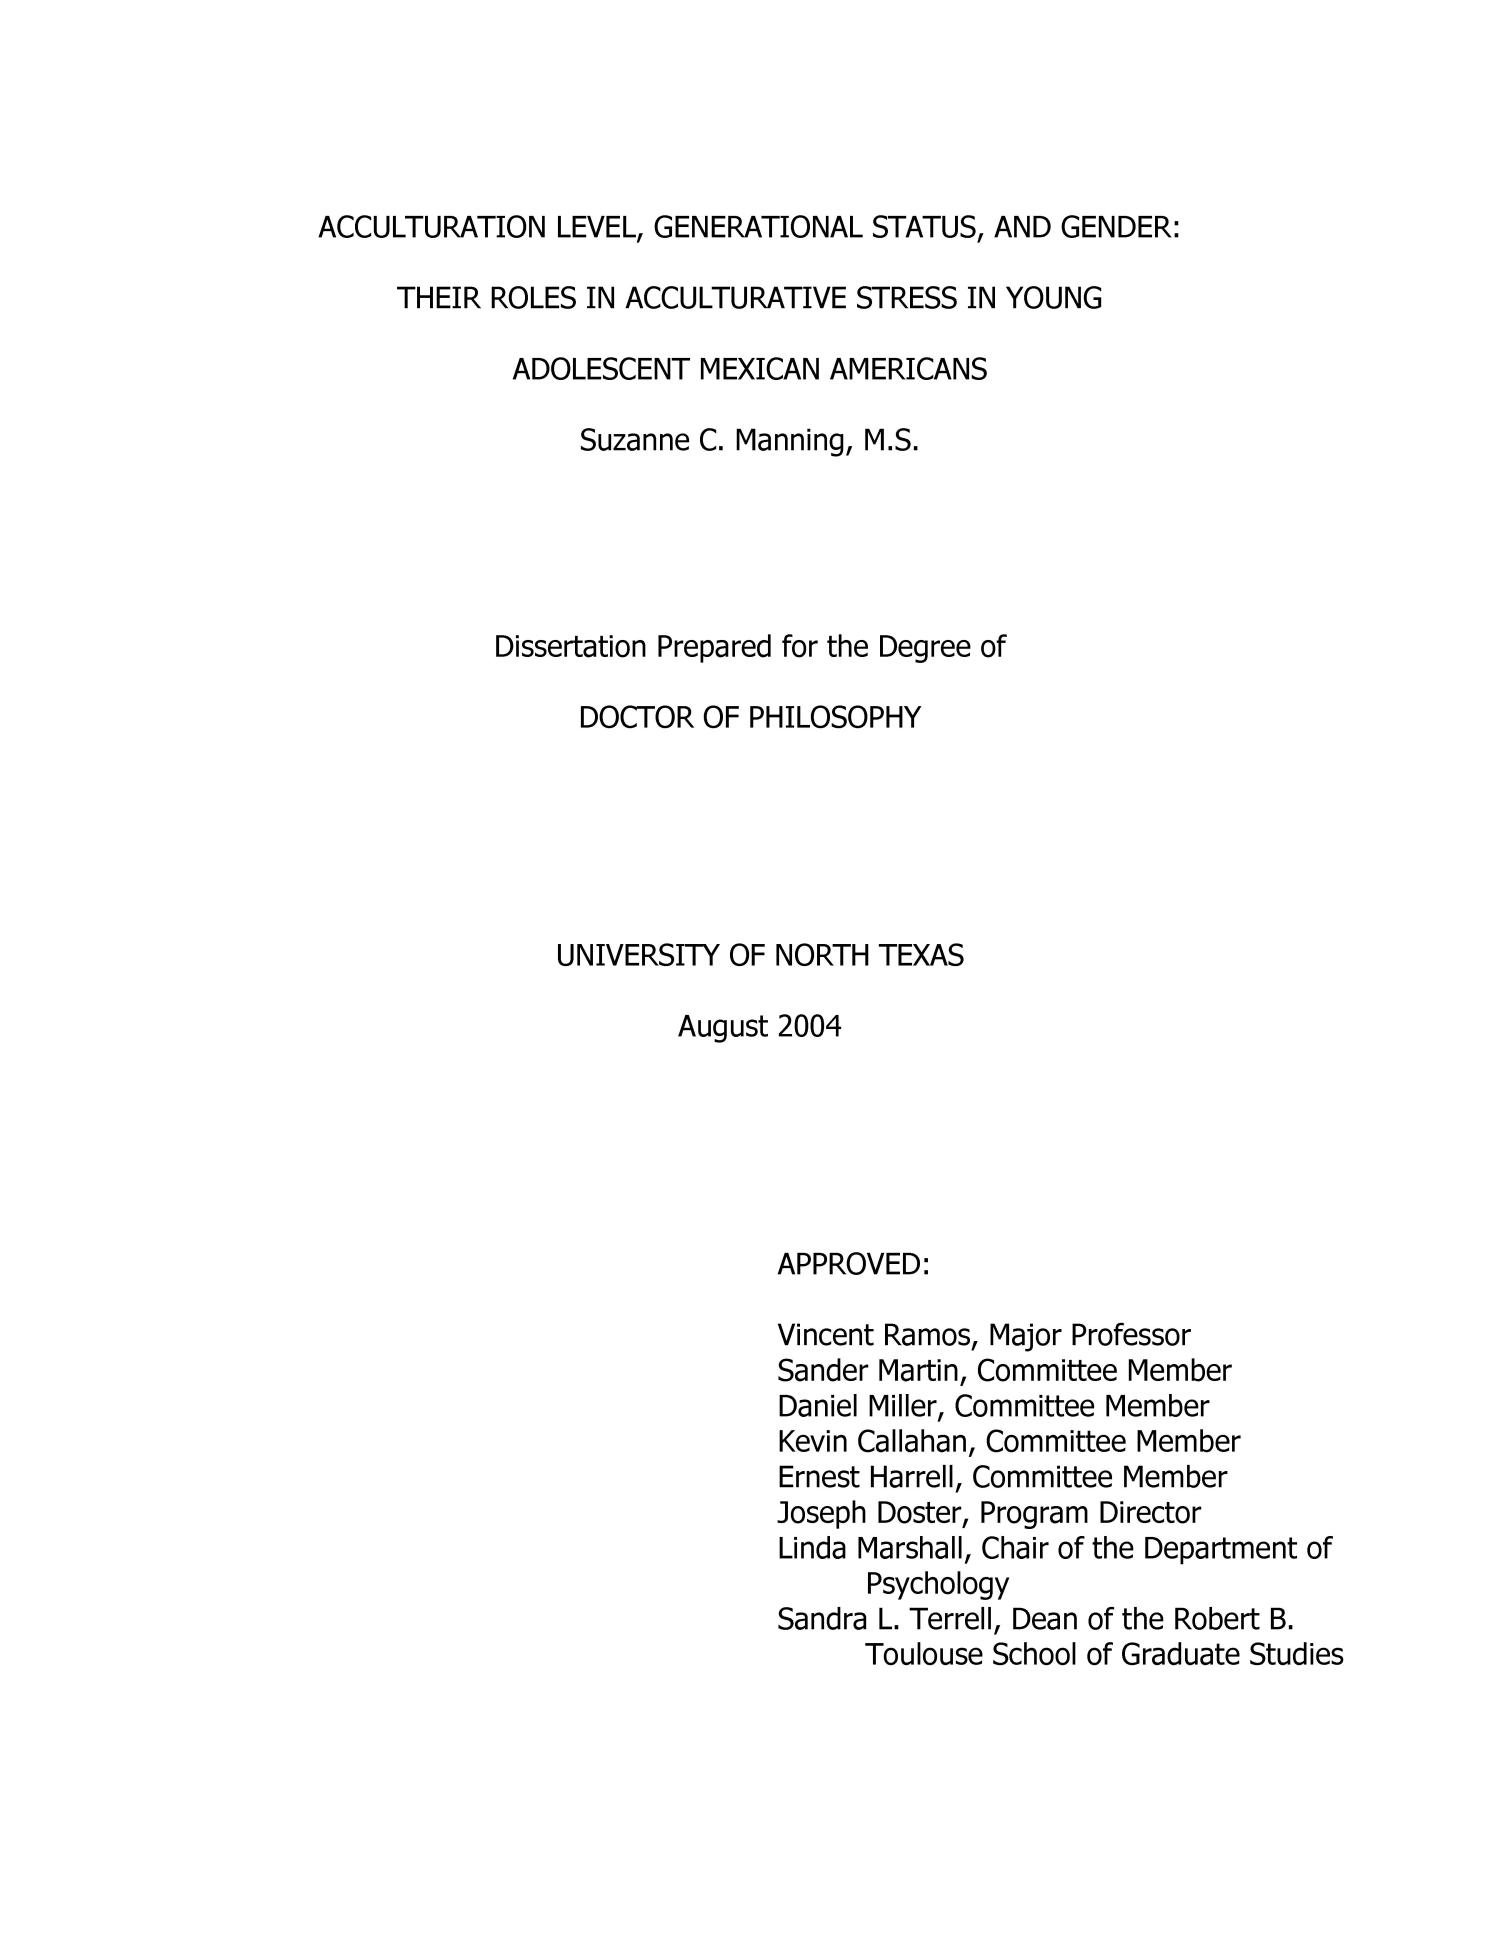 Acculturation Level, Generational Status and Gender: Their Role in Acculturative Stress in Young Adolescent Mexican Americans                                                                                                      Title Page